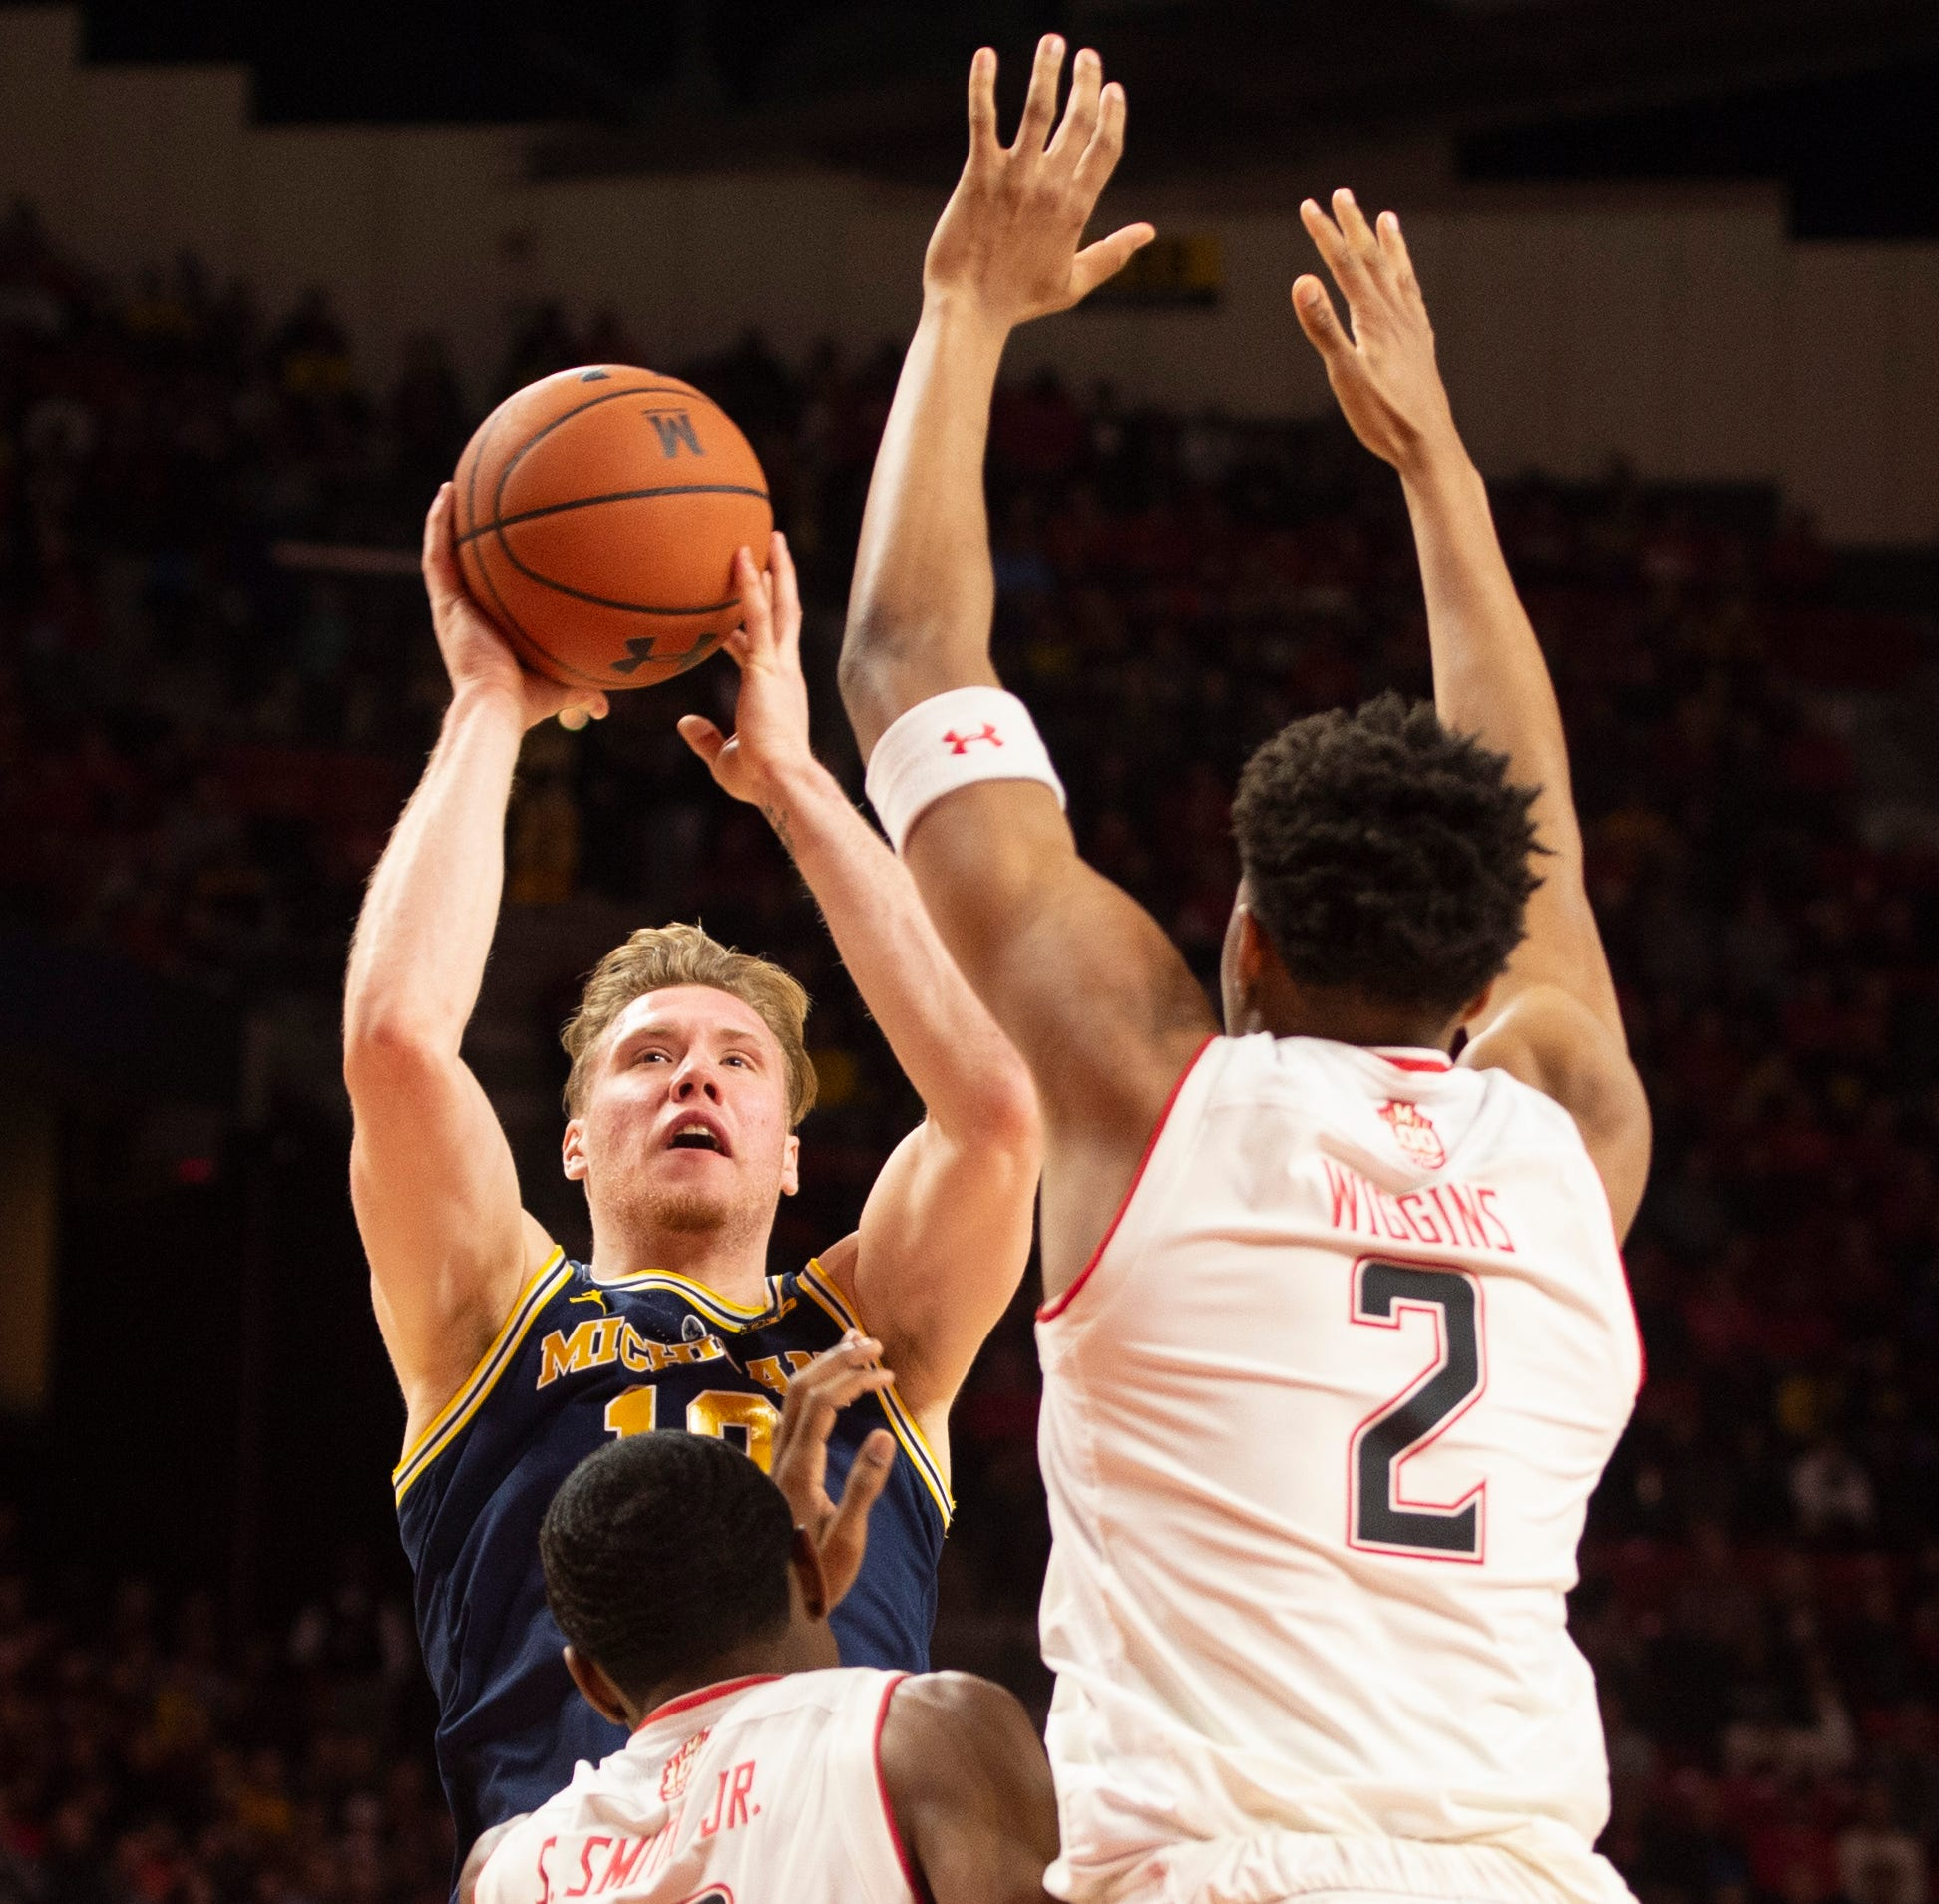 Michigan forward Ignas Brazdeikis shoots over Maryland defenders during the first half at XFINITY Center on Sunday.